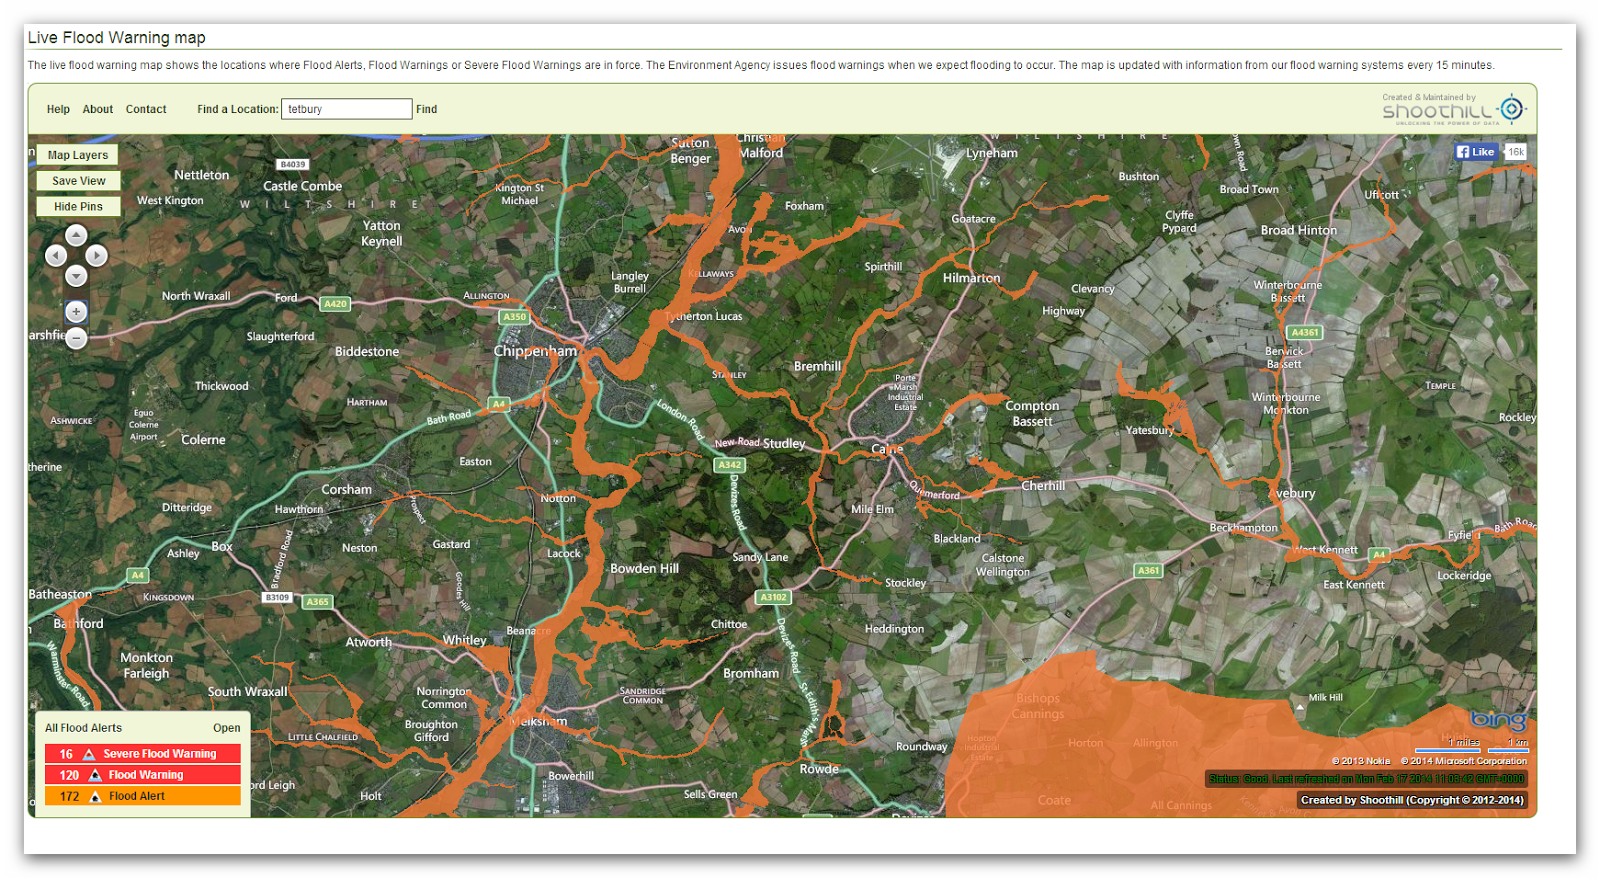 Environmental Agency Flood Map